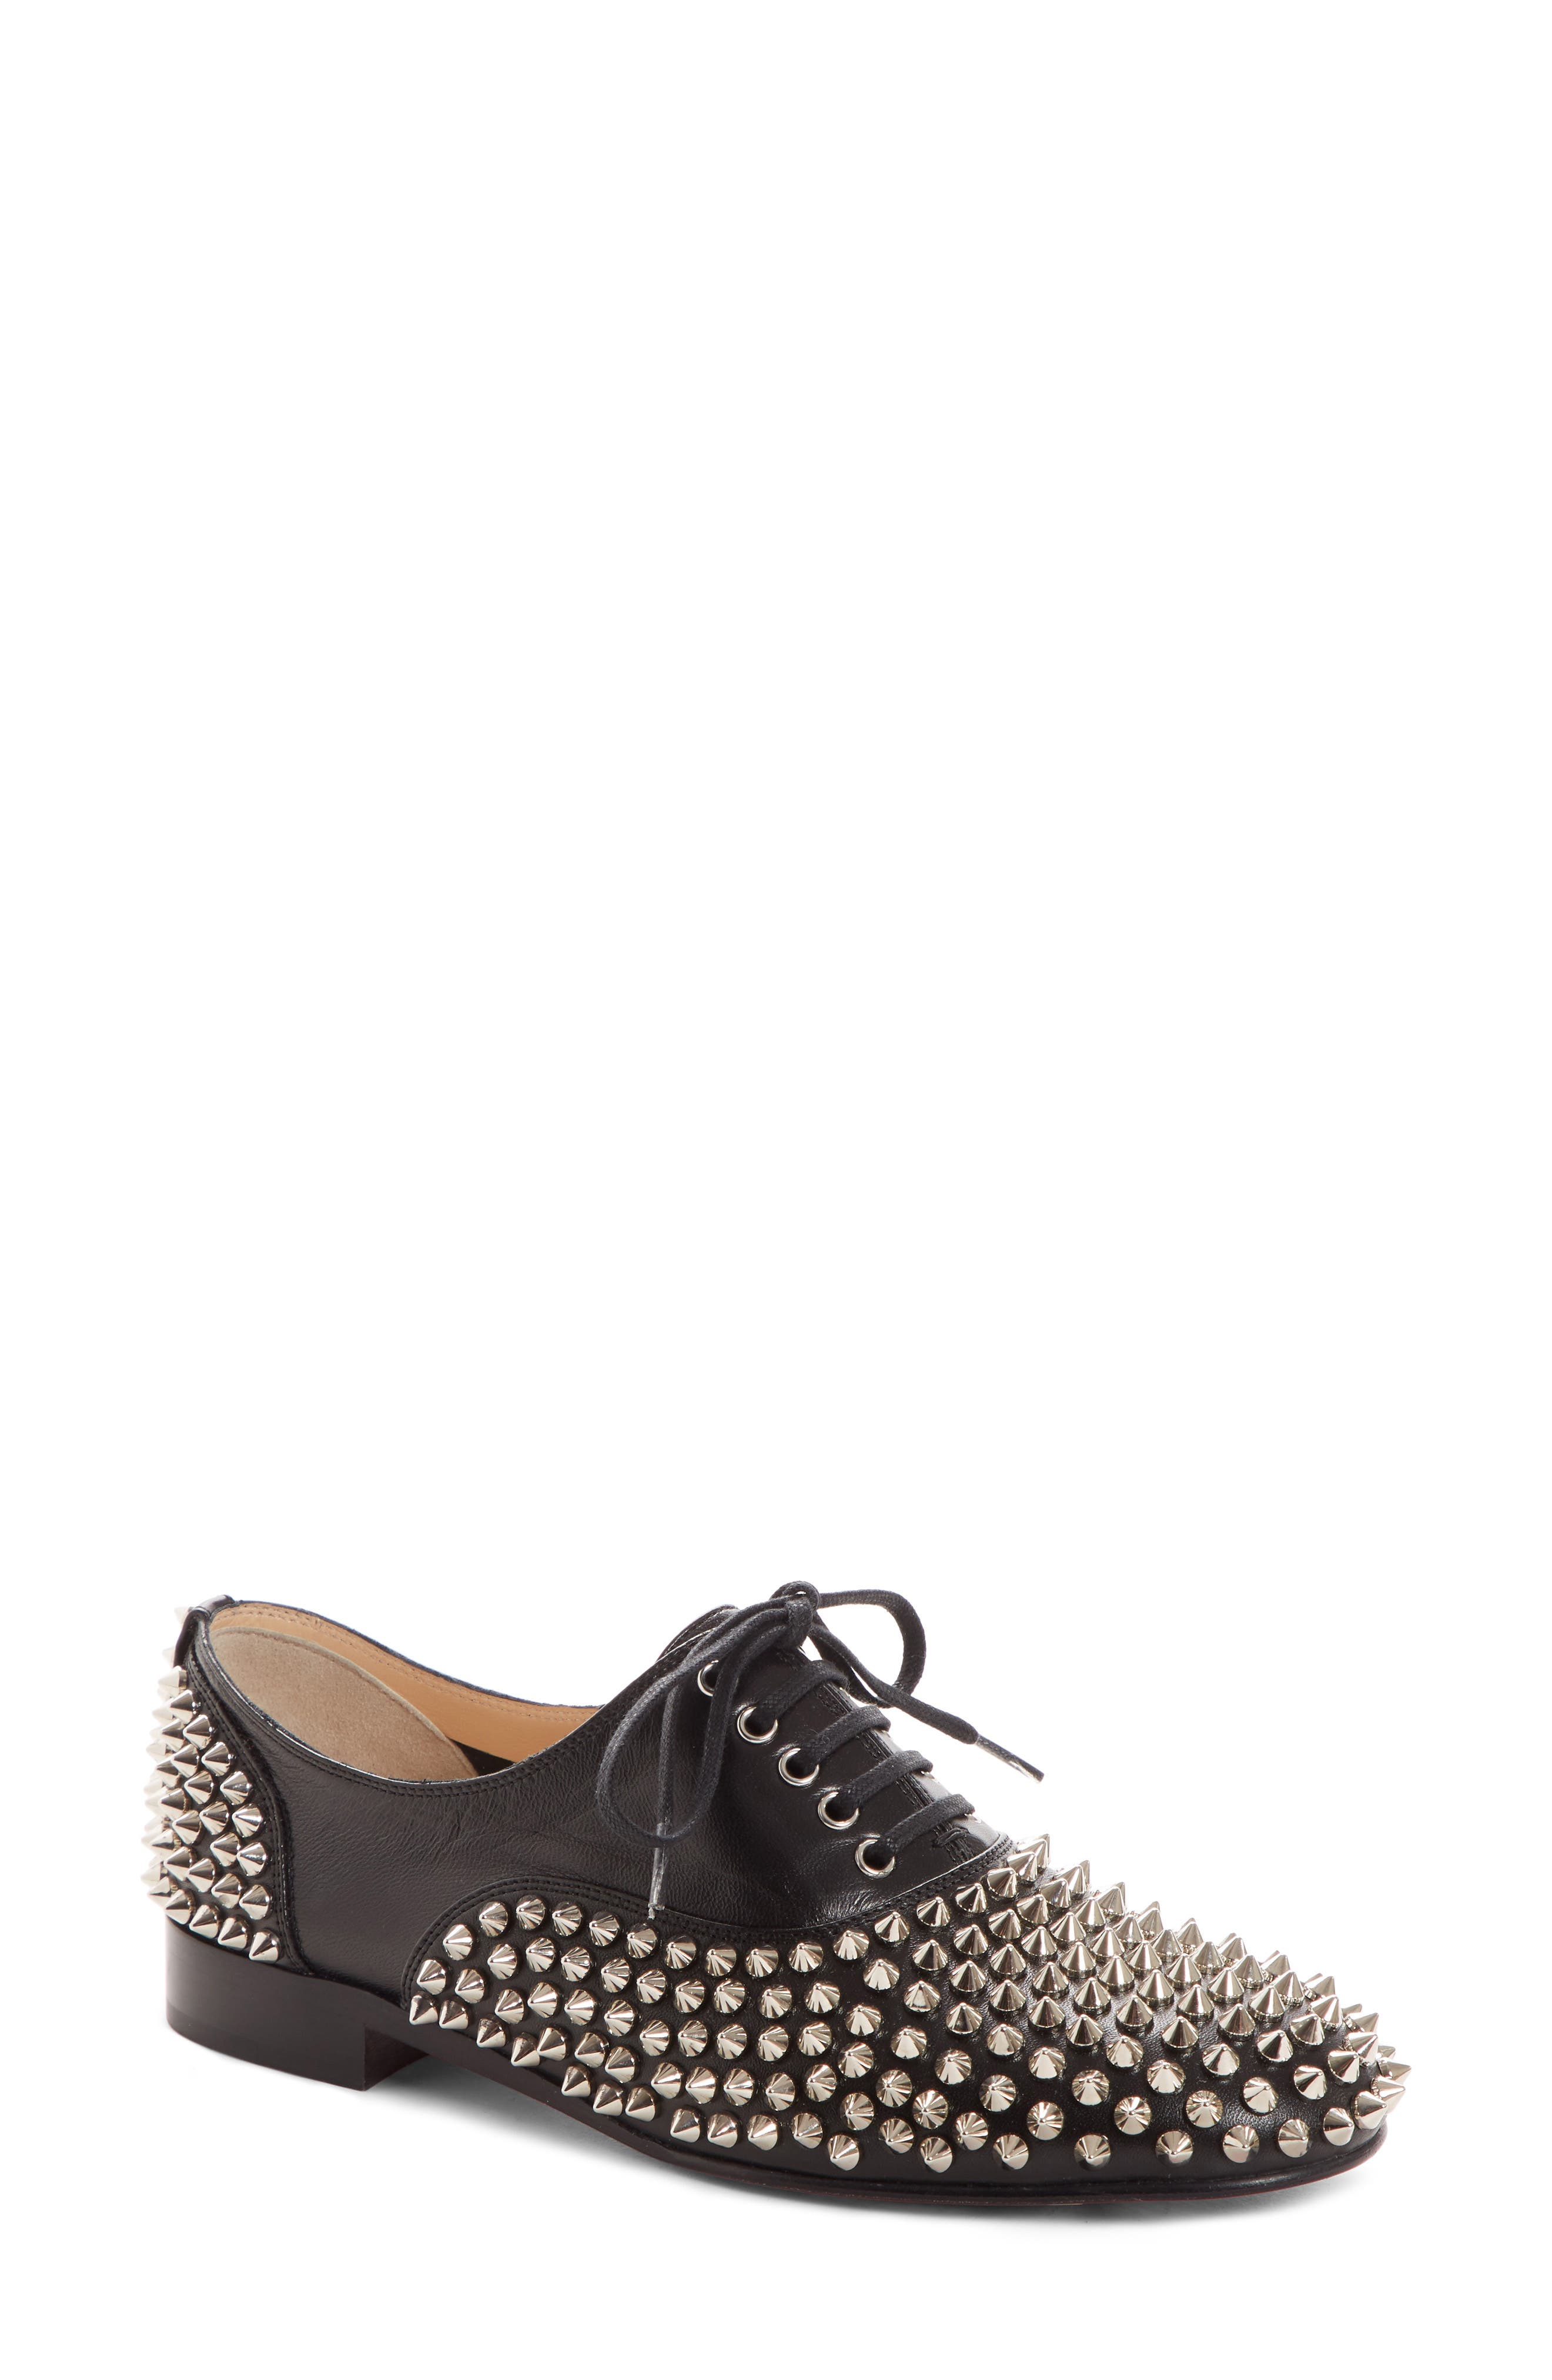 724b49599726 Christian Louboutin Freddy Spiked Loafer - Black